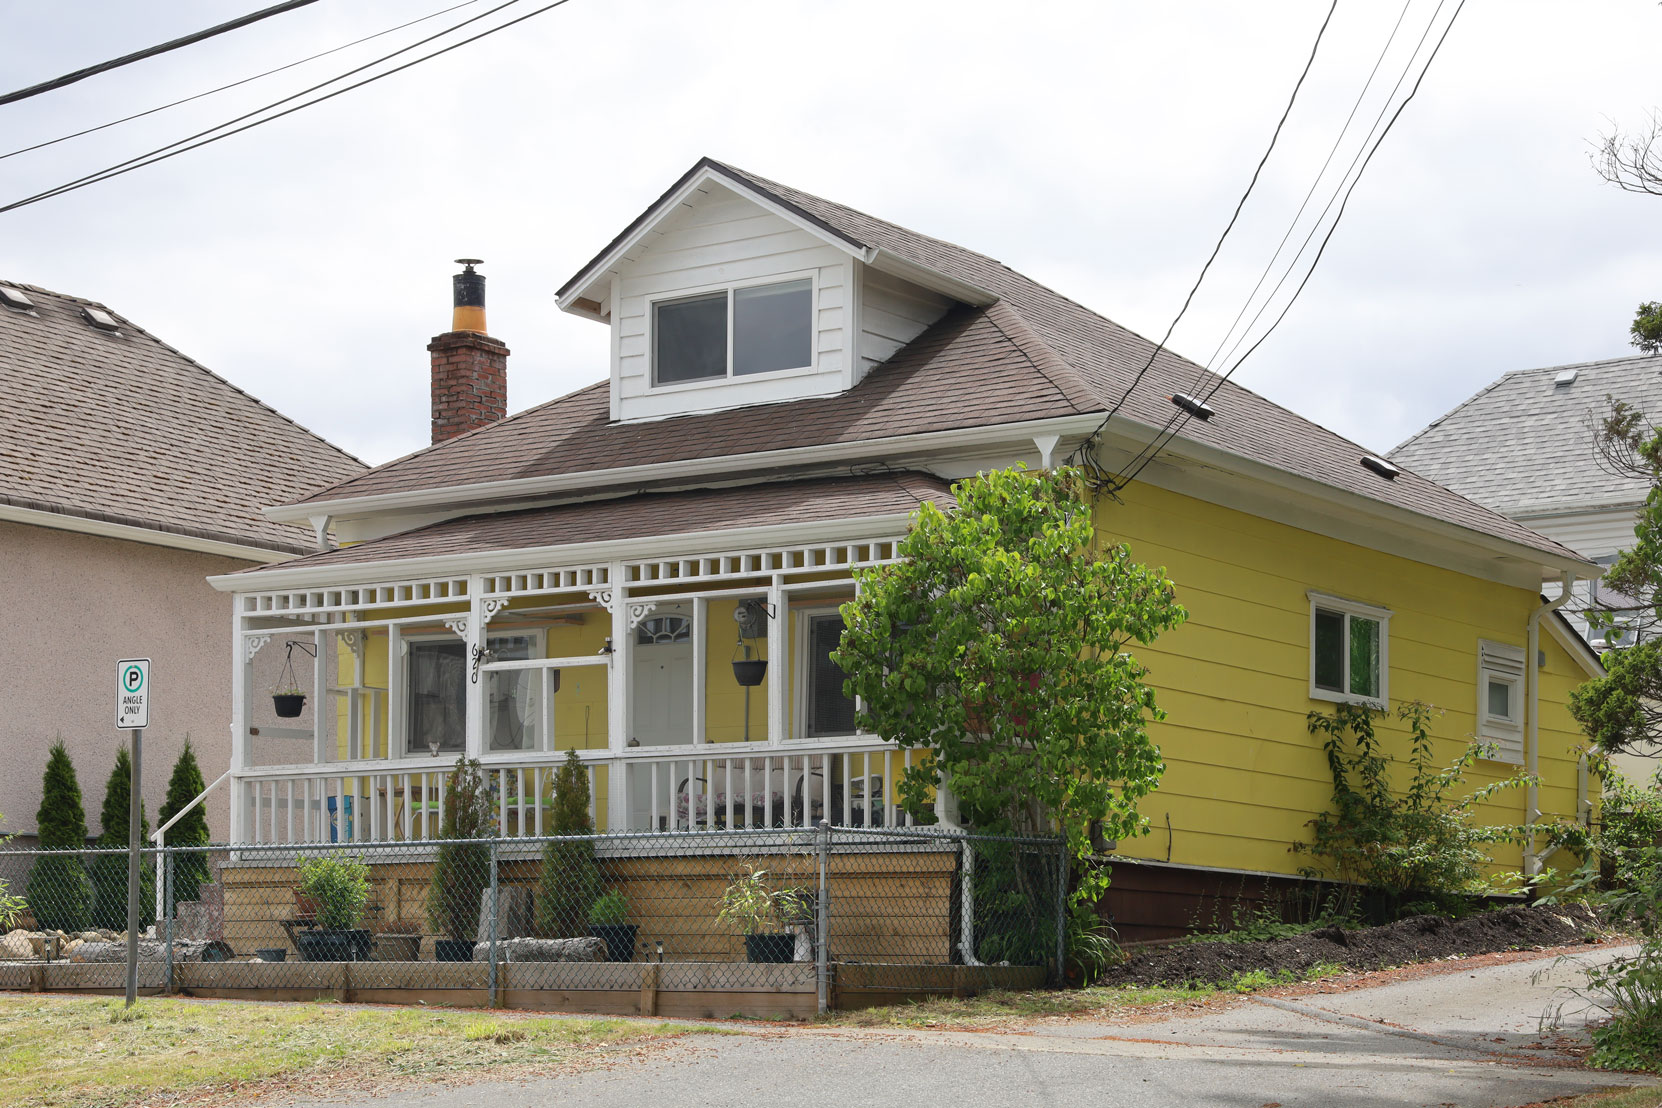 620 3rd Avenue, built in 1920 (photo: Mark Anderson)